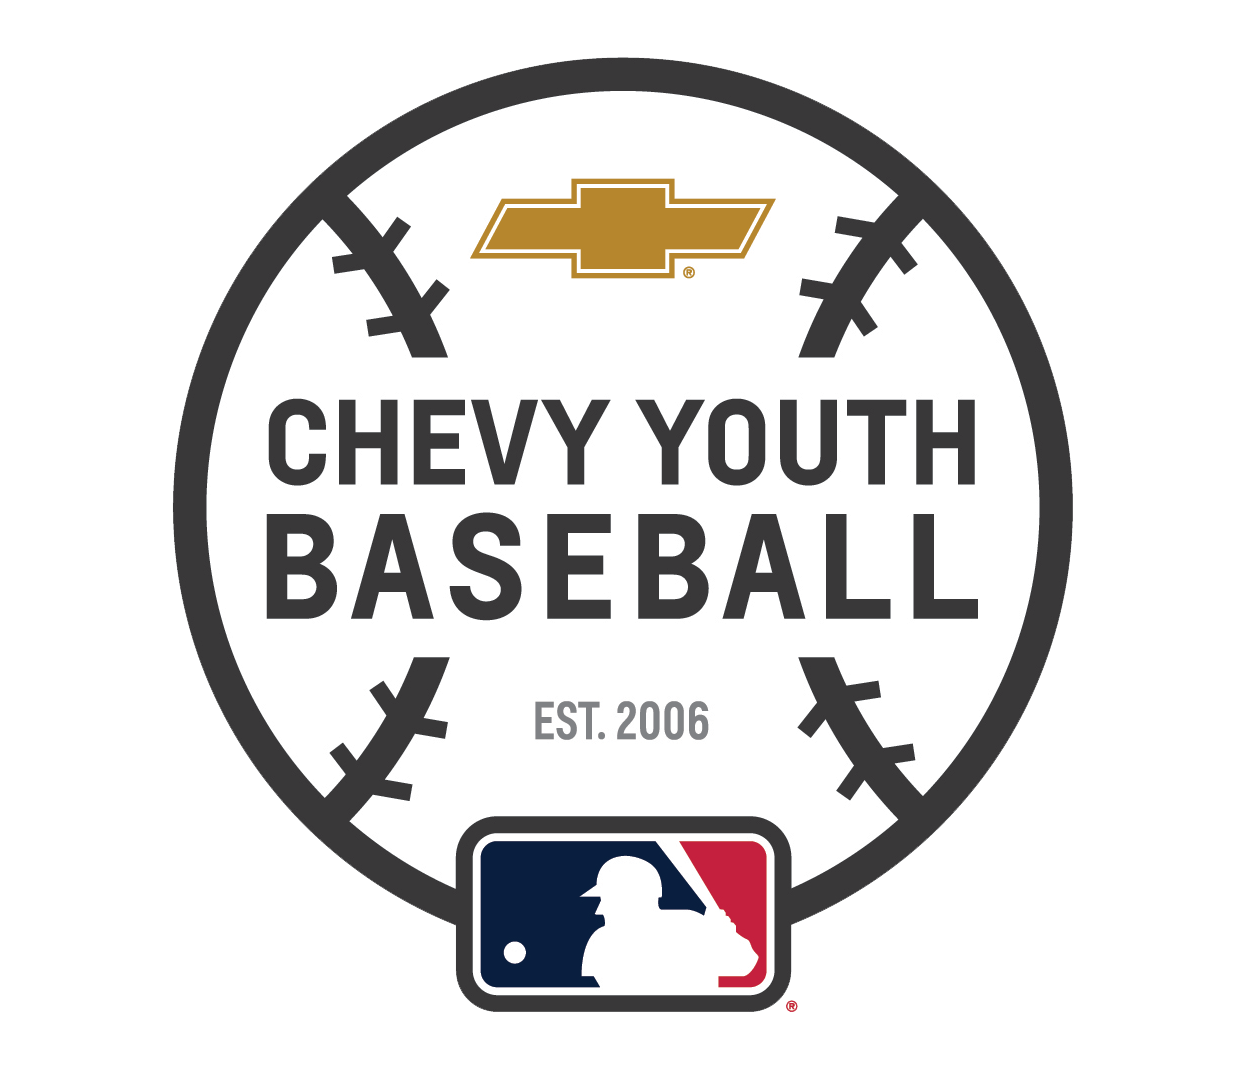 chevy youth baseball diehl automotive grove city sponsorship